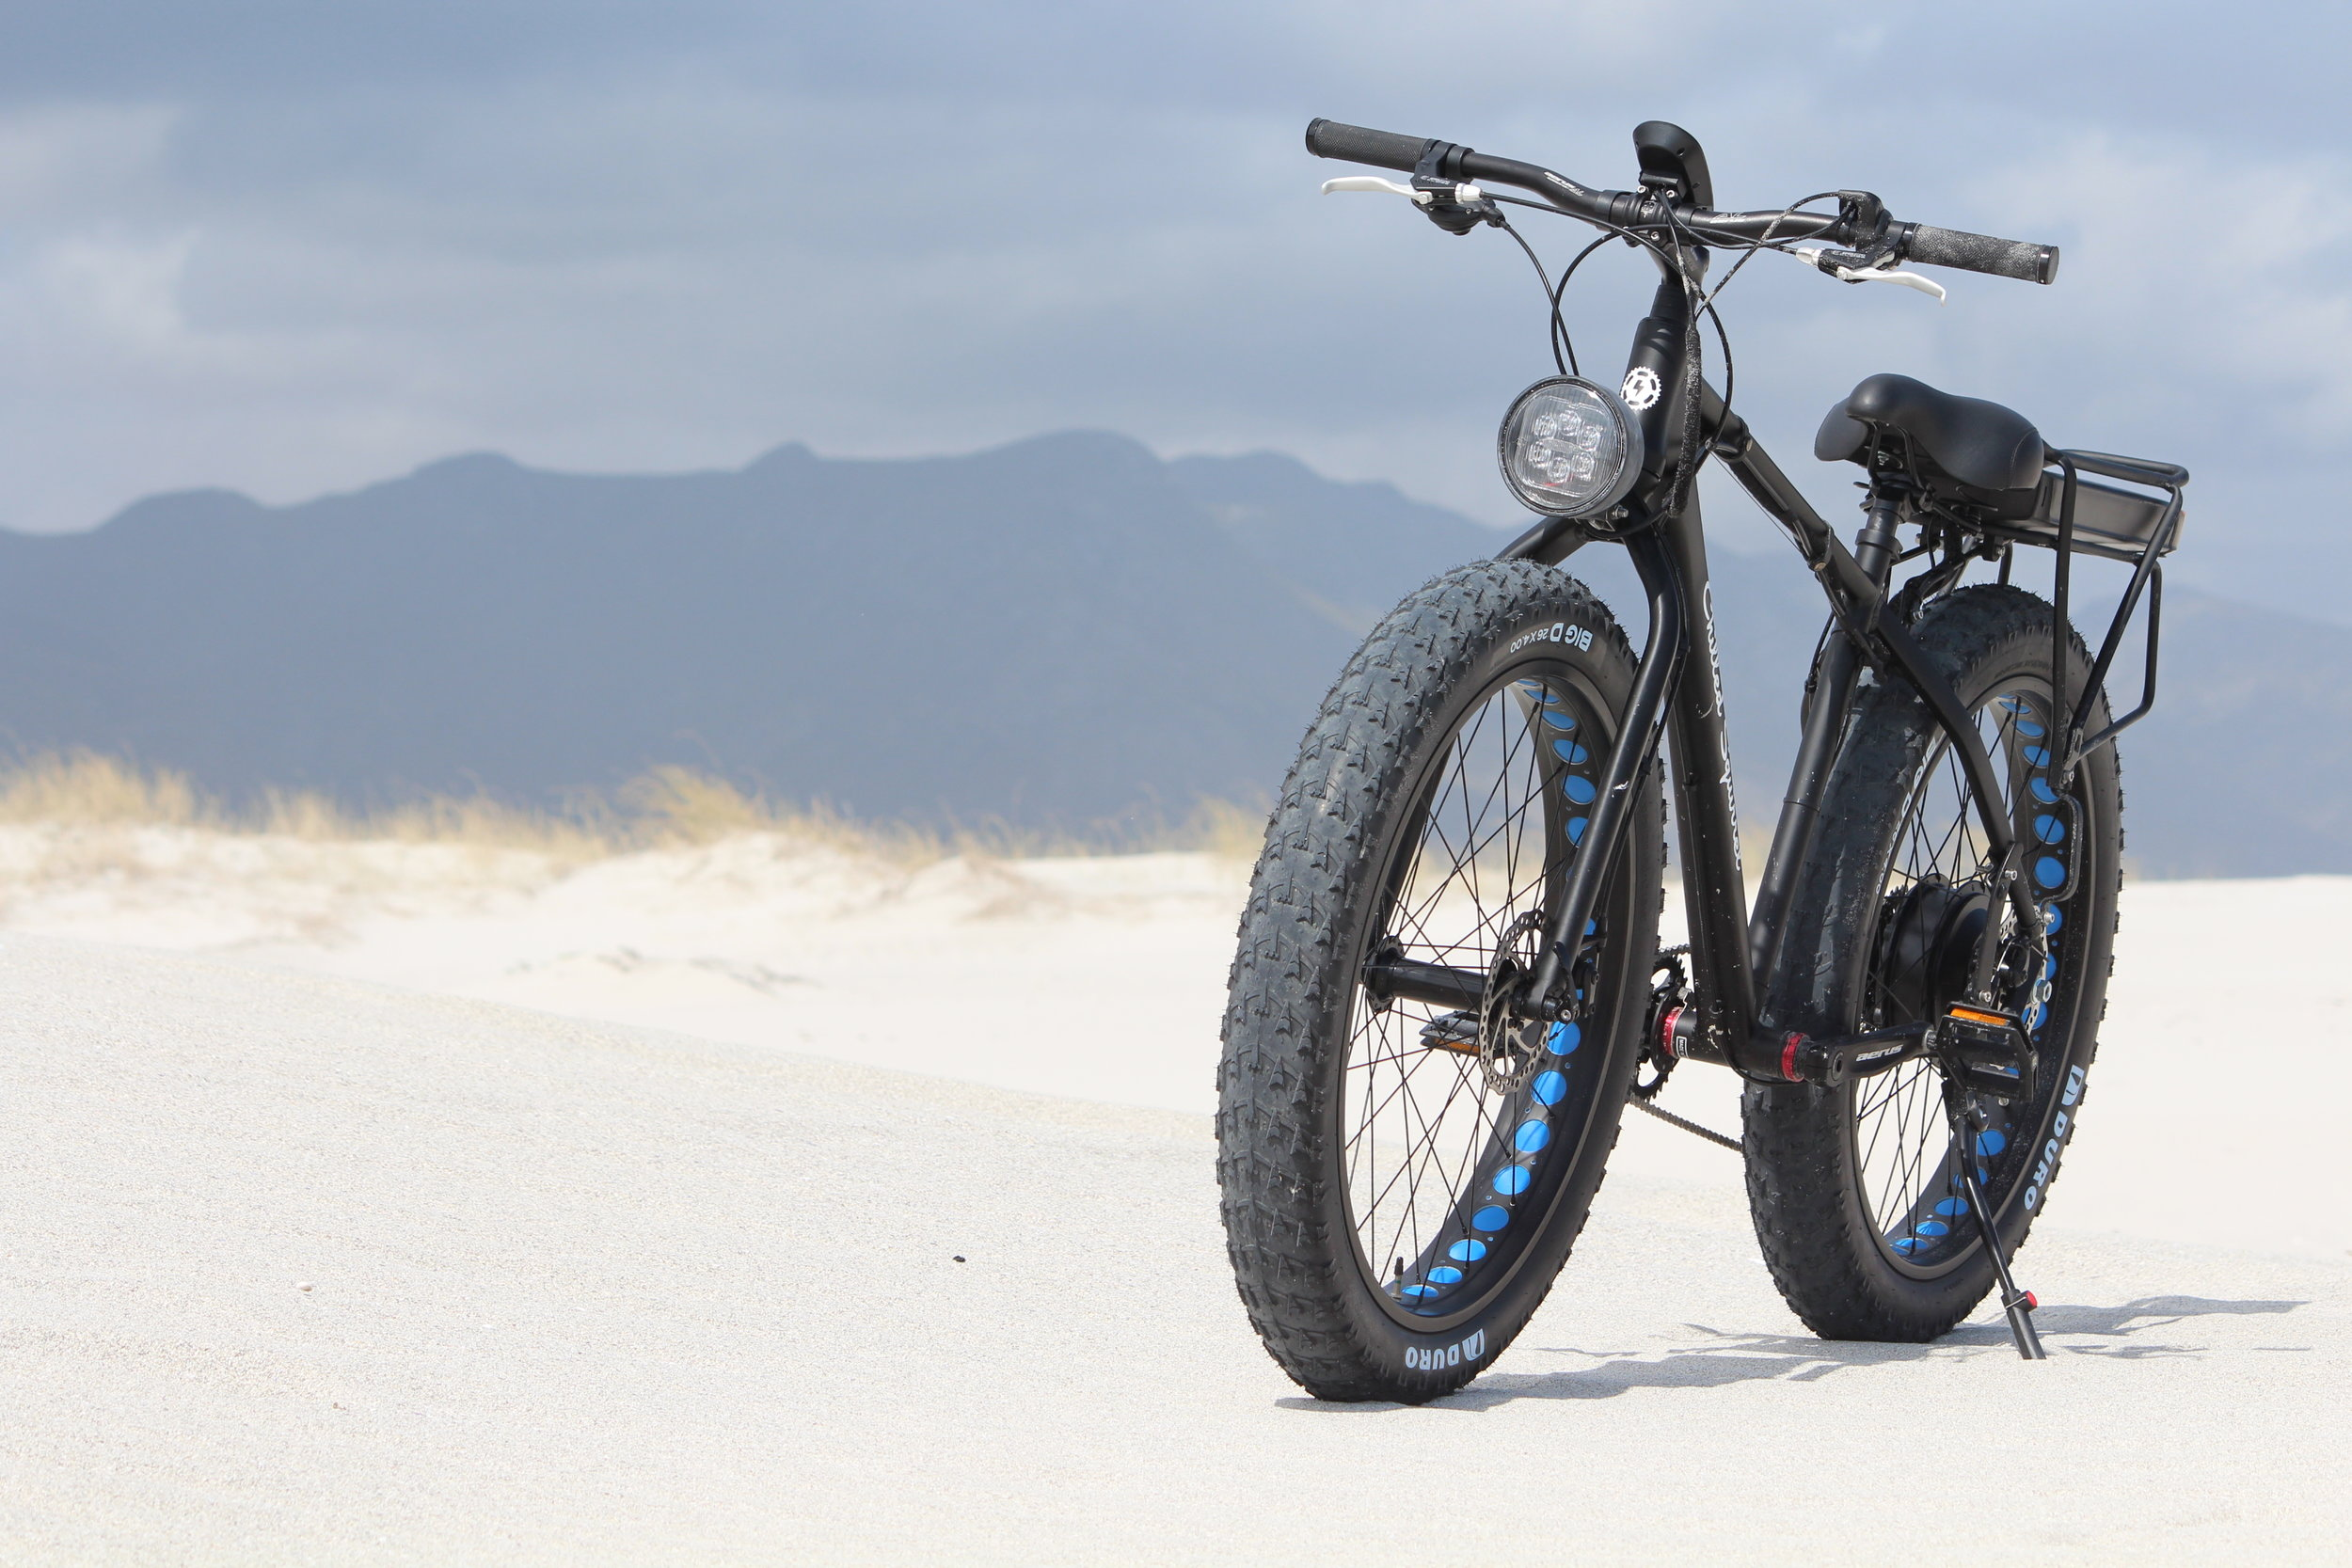 electricbikesforbeaches